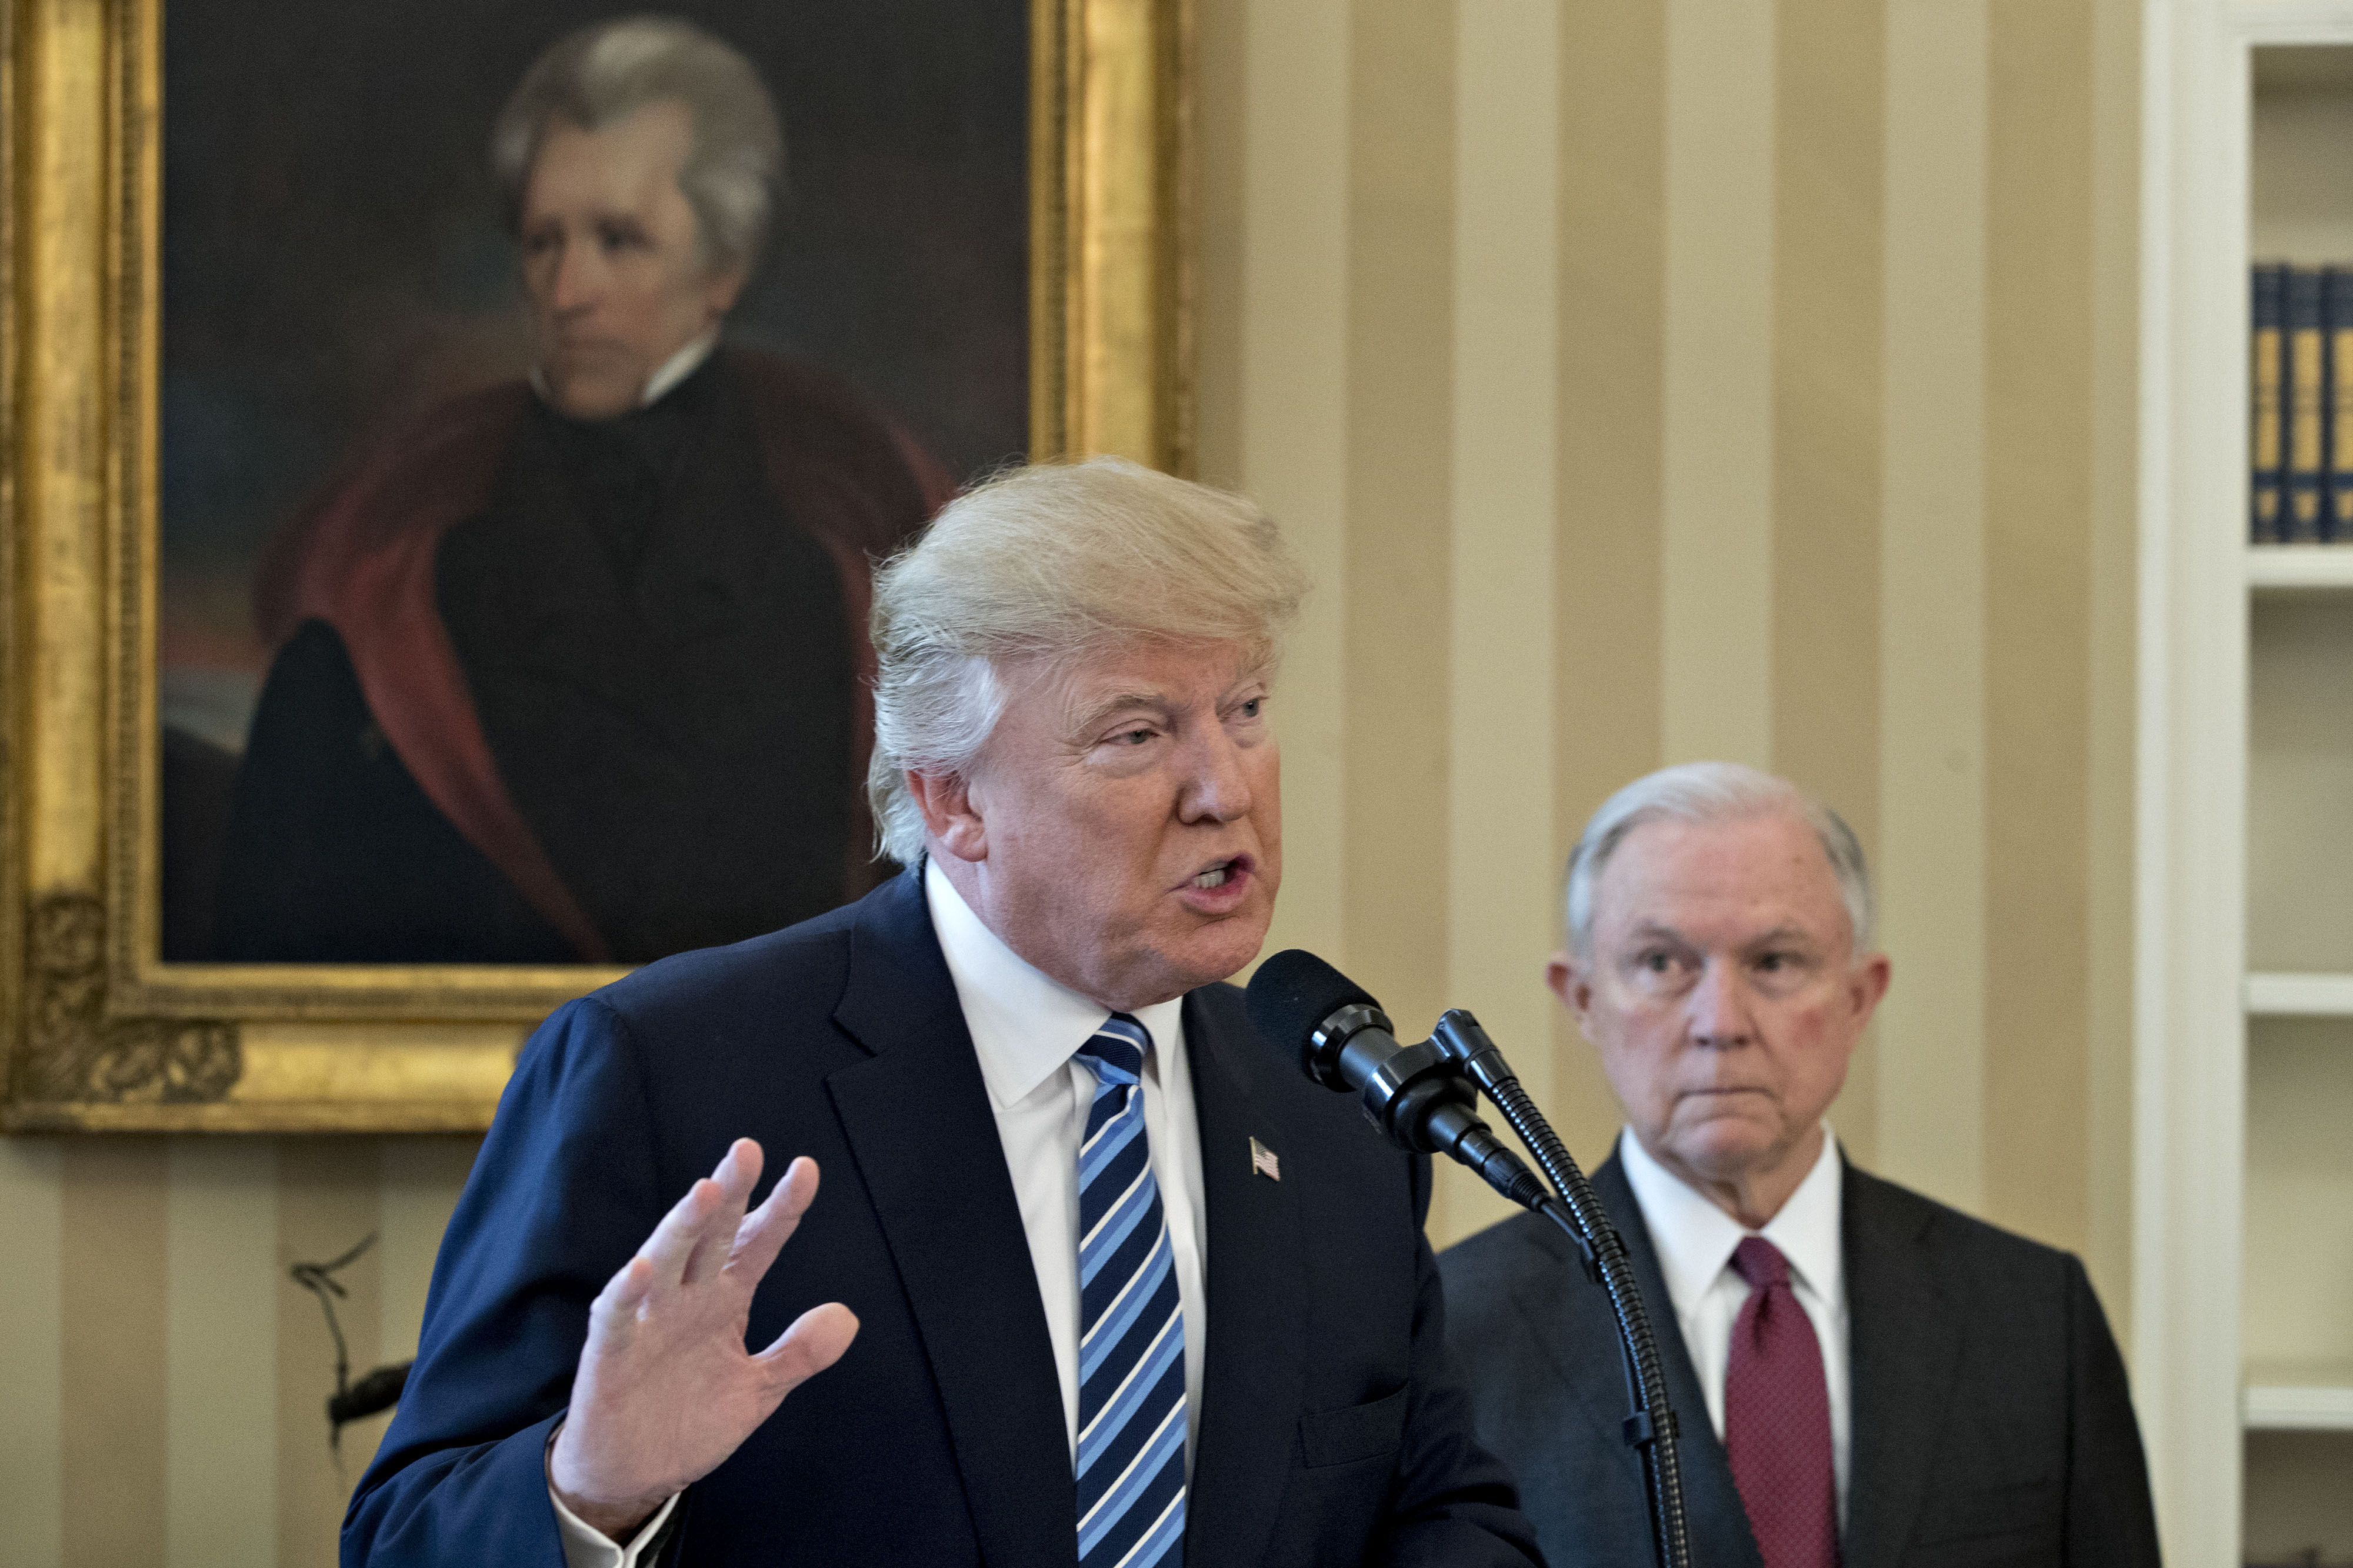 President Trump speaks as Jeff Sessions listens in the Oval Office of the White House in Washington, on Feb. 9, 2017.